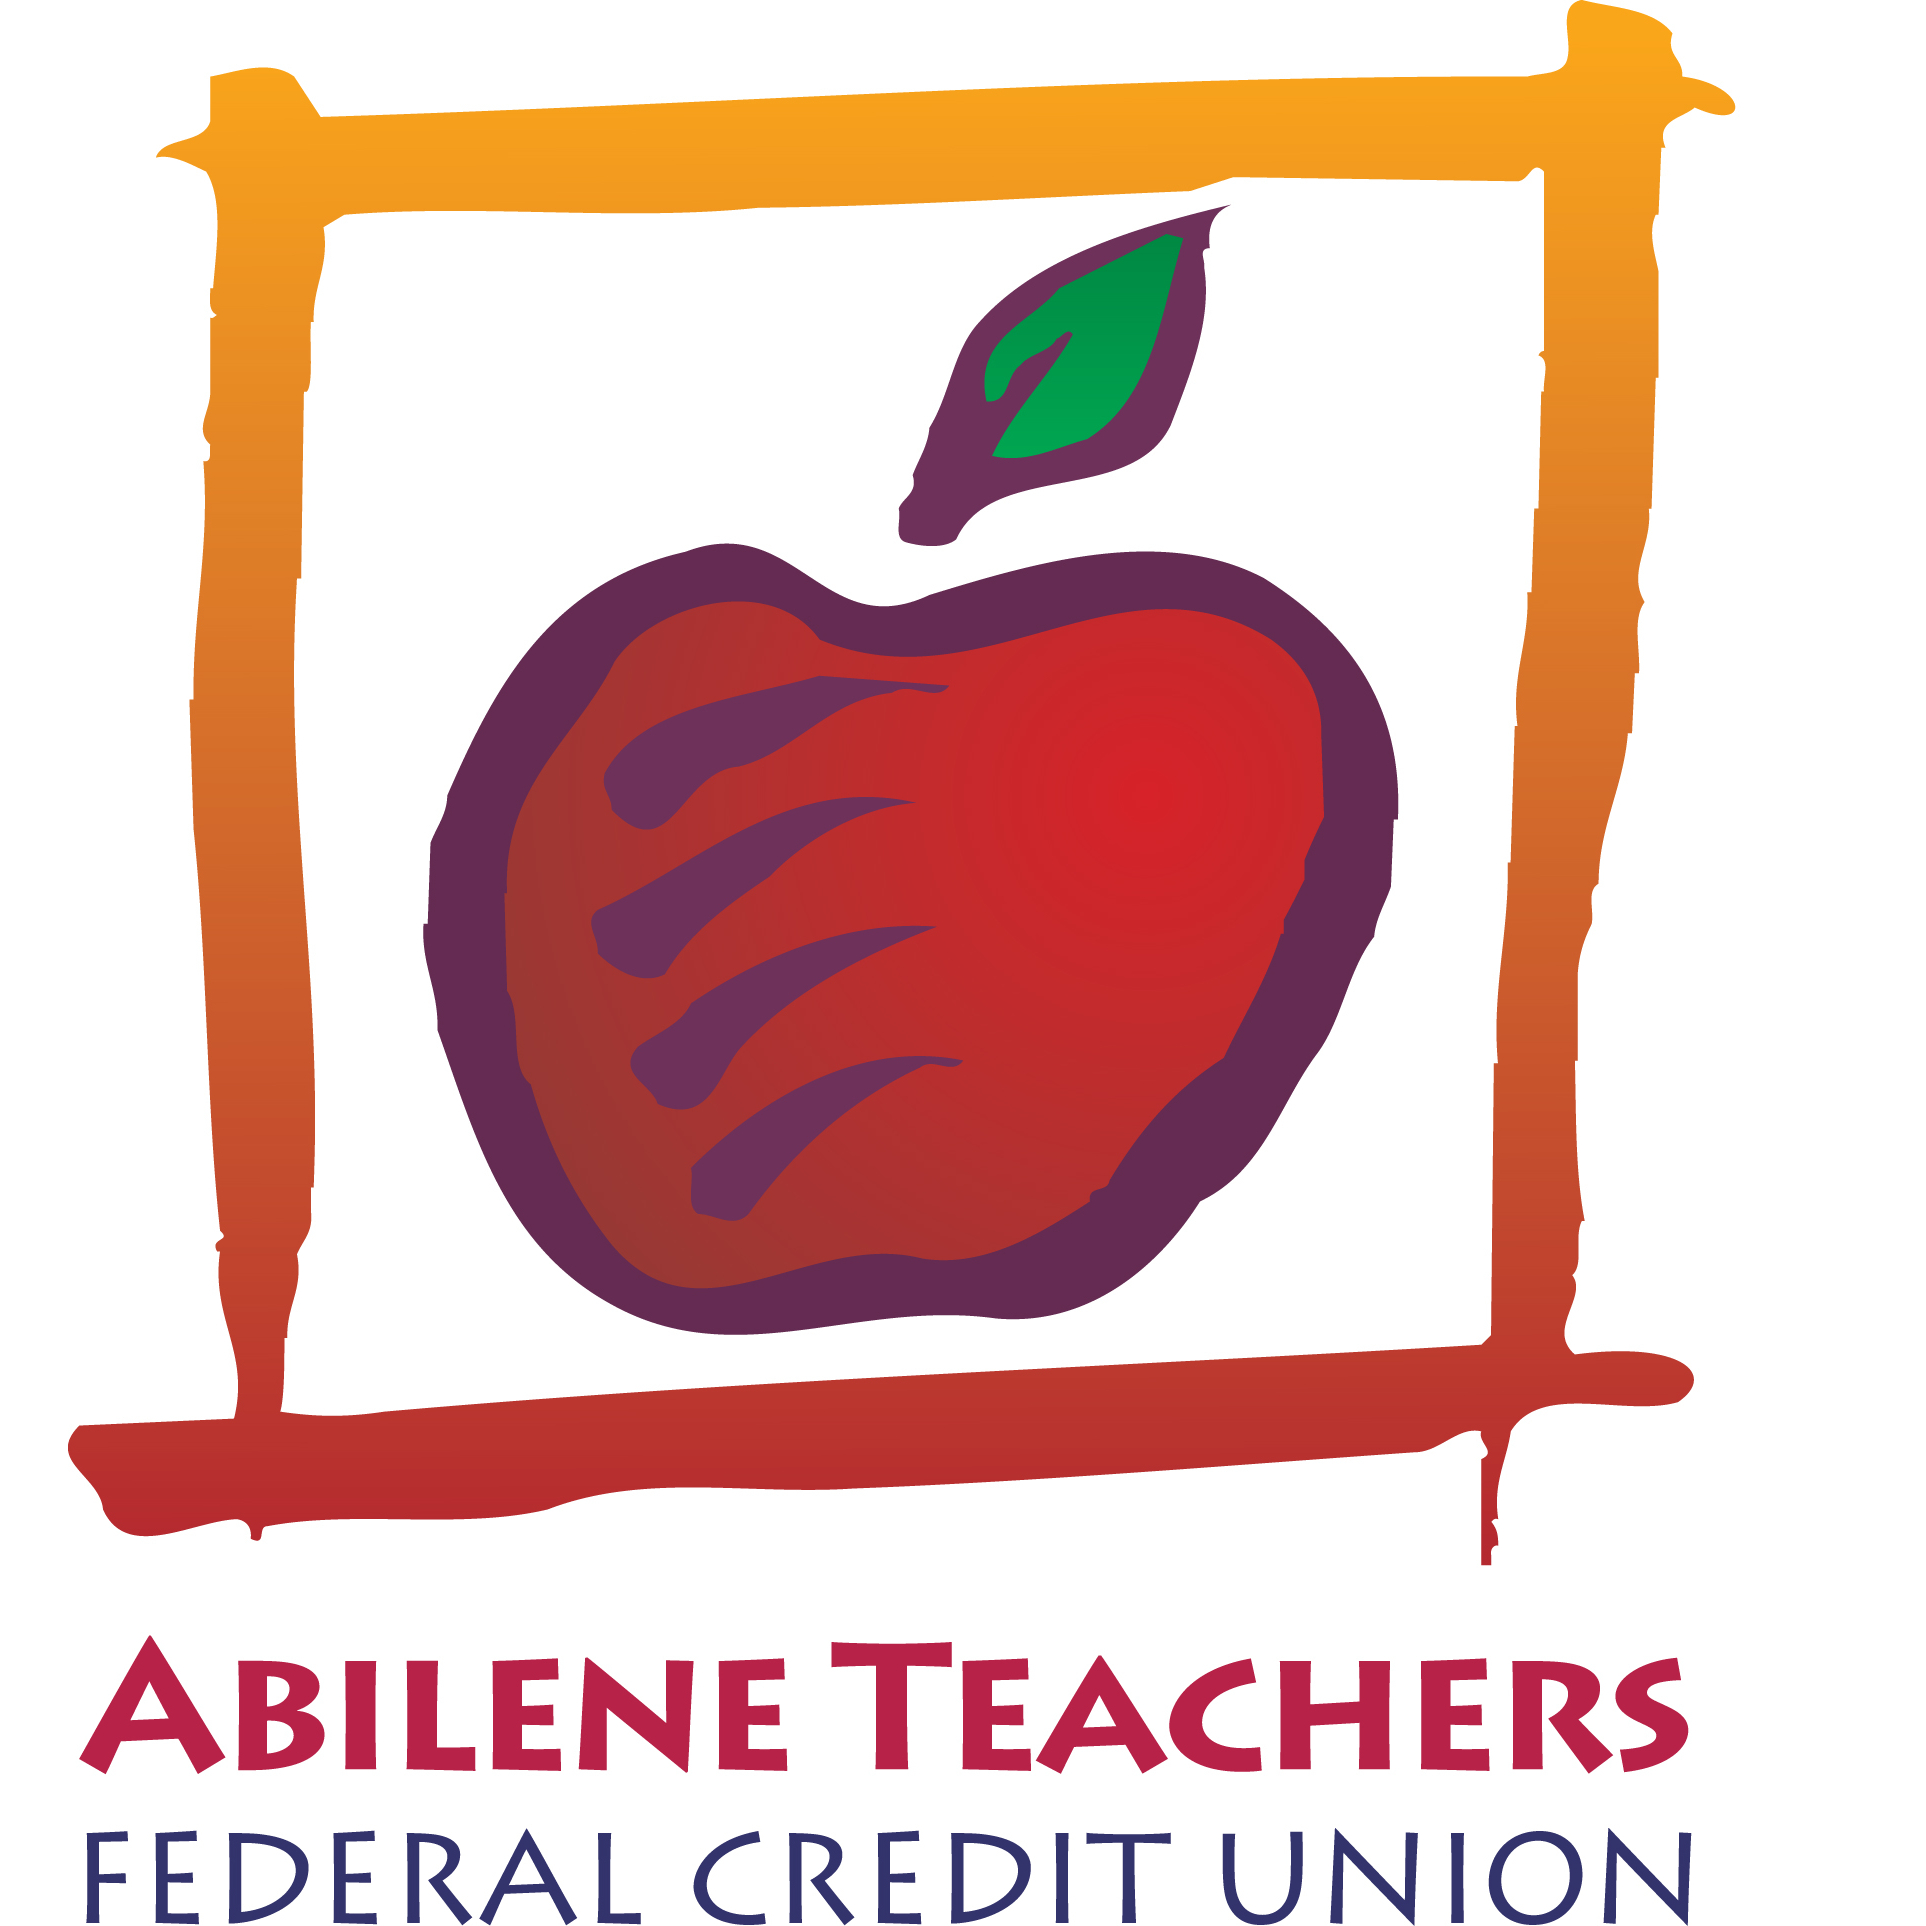 Abilene Teachers Federal Credit Union image 3